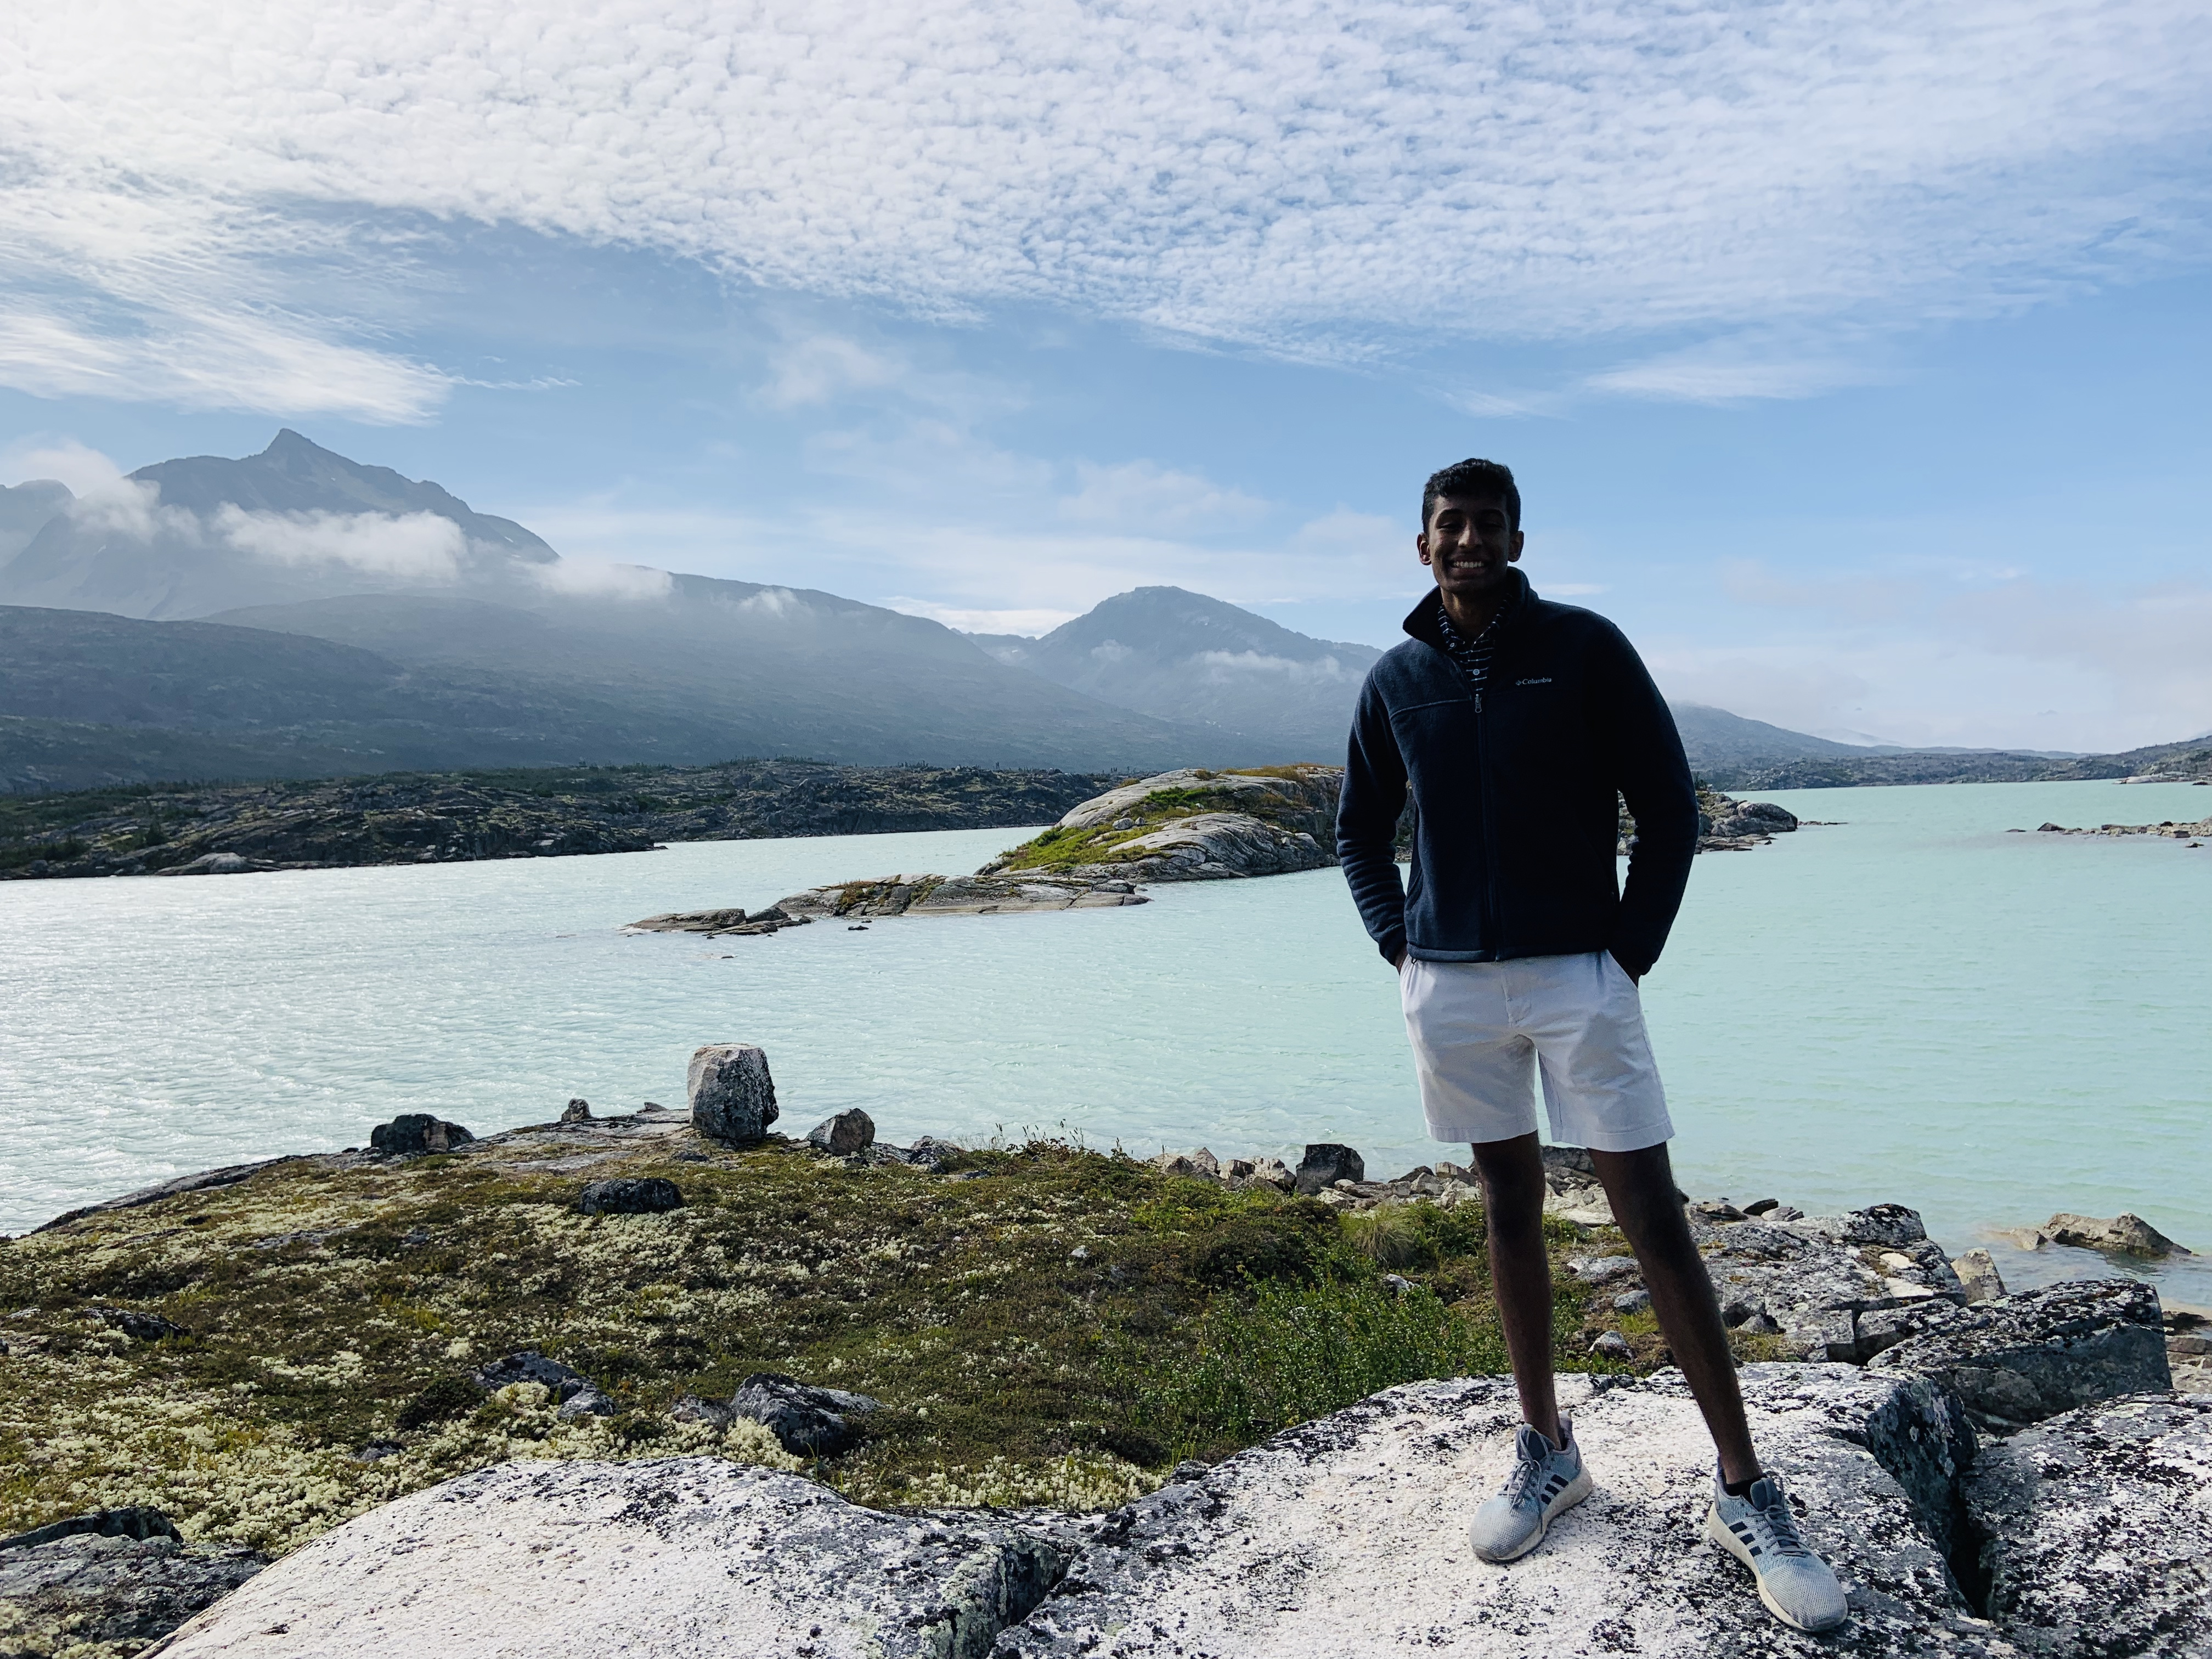 Trip Leader Sahil Inaganti standing in front of scenic mountain and ocean view